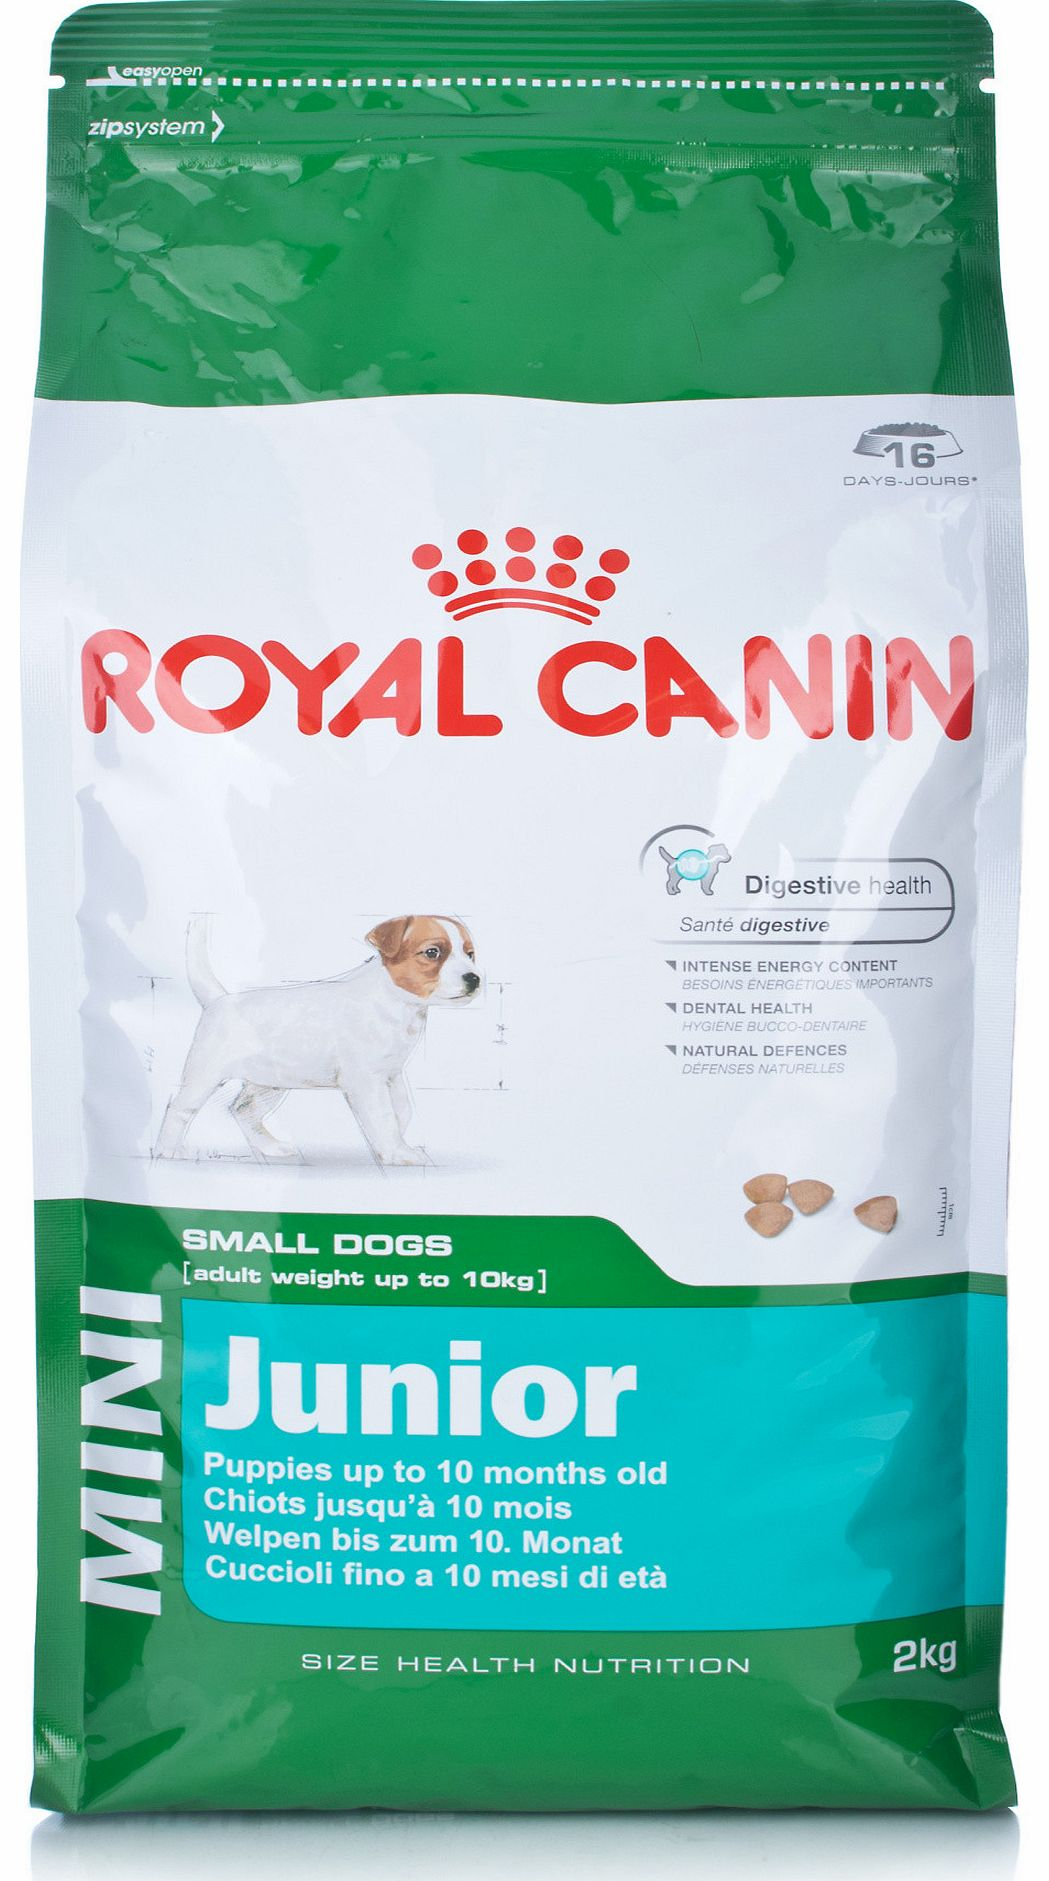 royal canin size health nutrition mini junior review. Black Bedroom Furniture Sets. Home Design Ideas